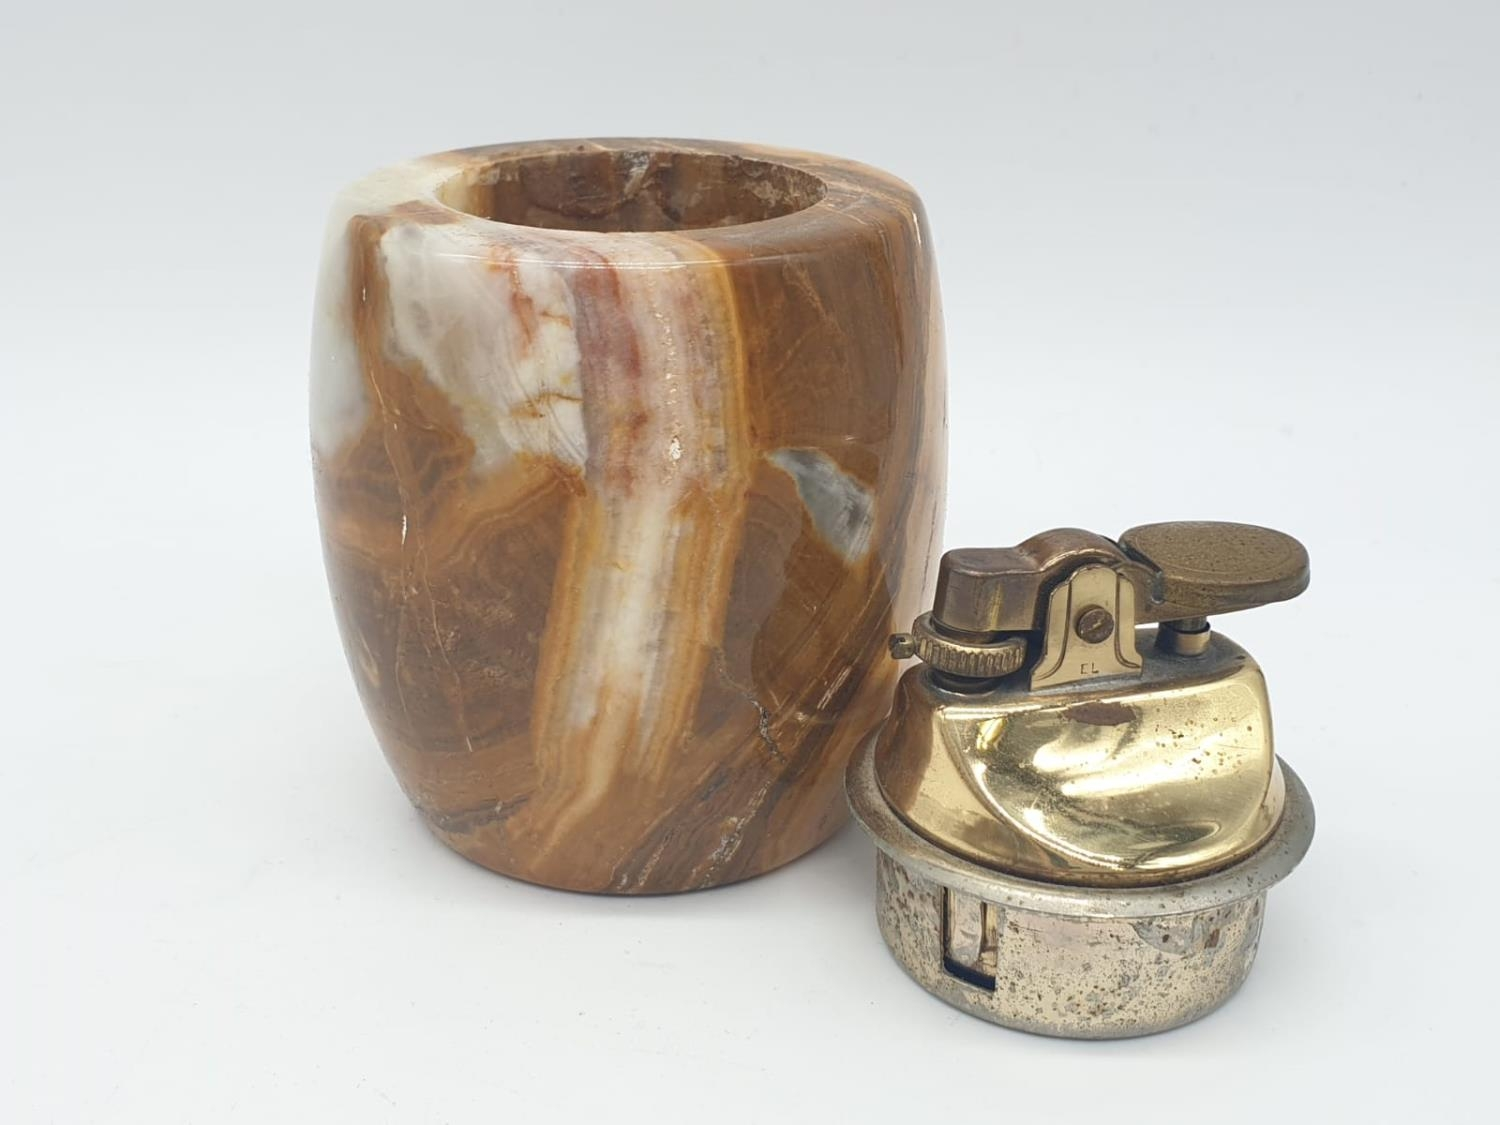 An onyx cigarette box, lighter and 2 onyx ash trays (small chip on cigarette box lid). - Image 9 of 16